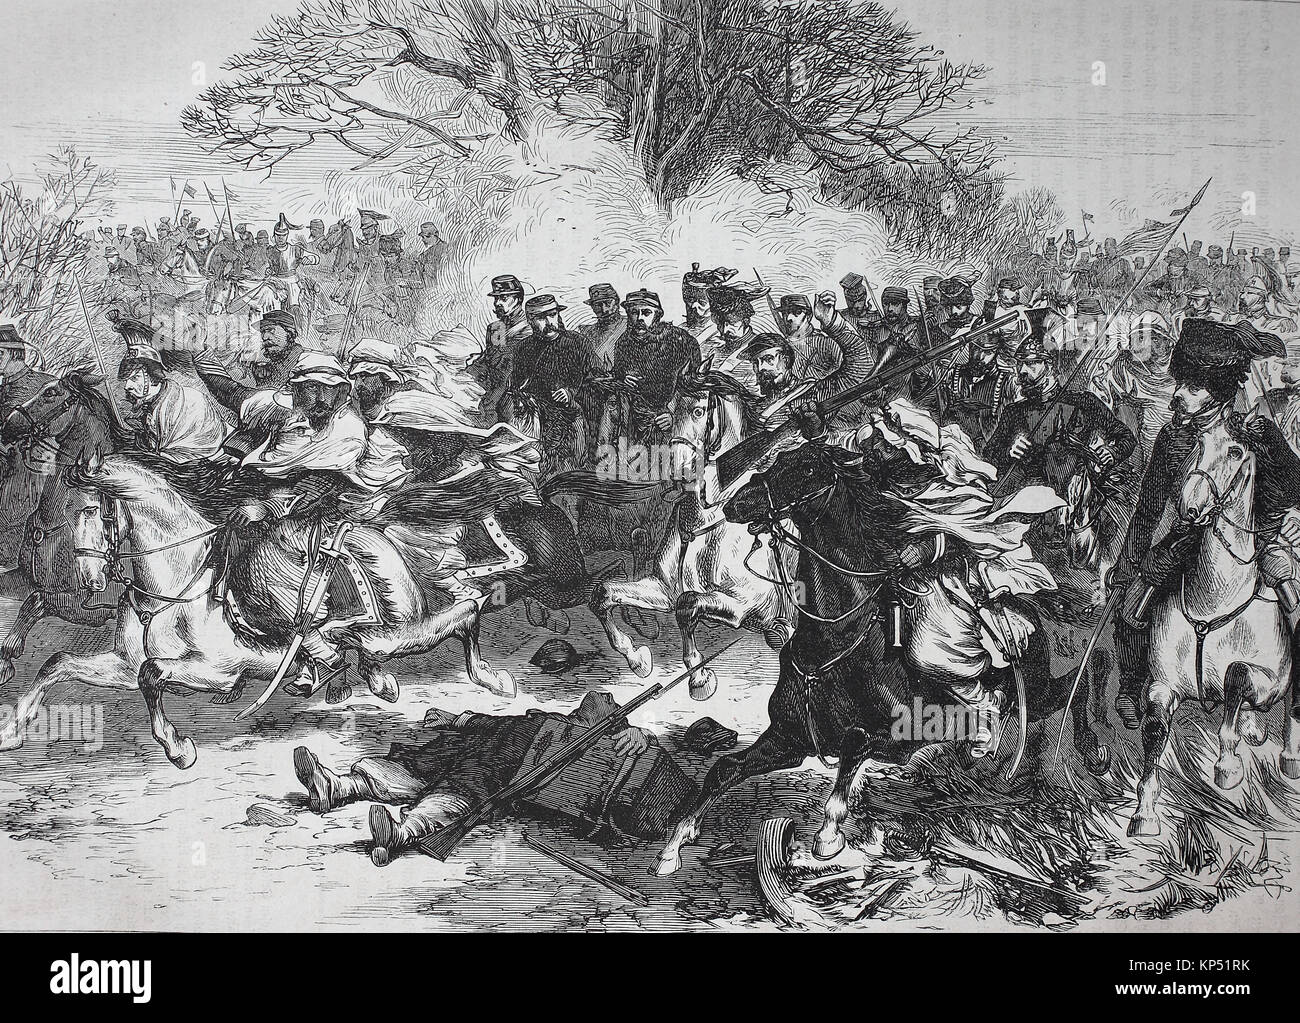 Withdrawal of the French cavalry after the Battle of Orleans, France, German-French campaign of 1870/1871, time - Stock Image